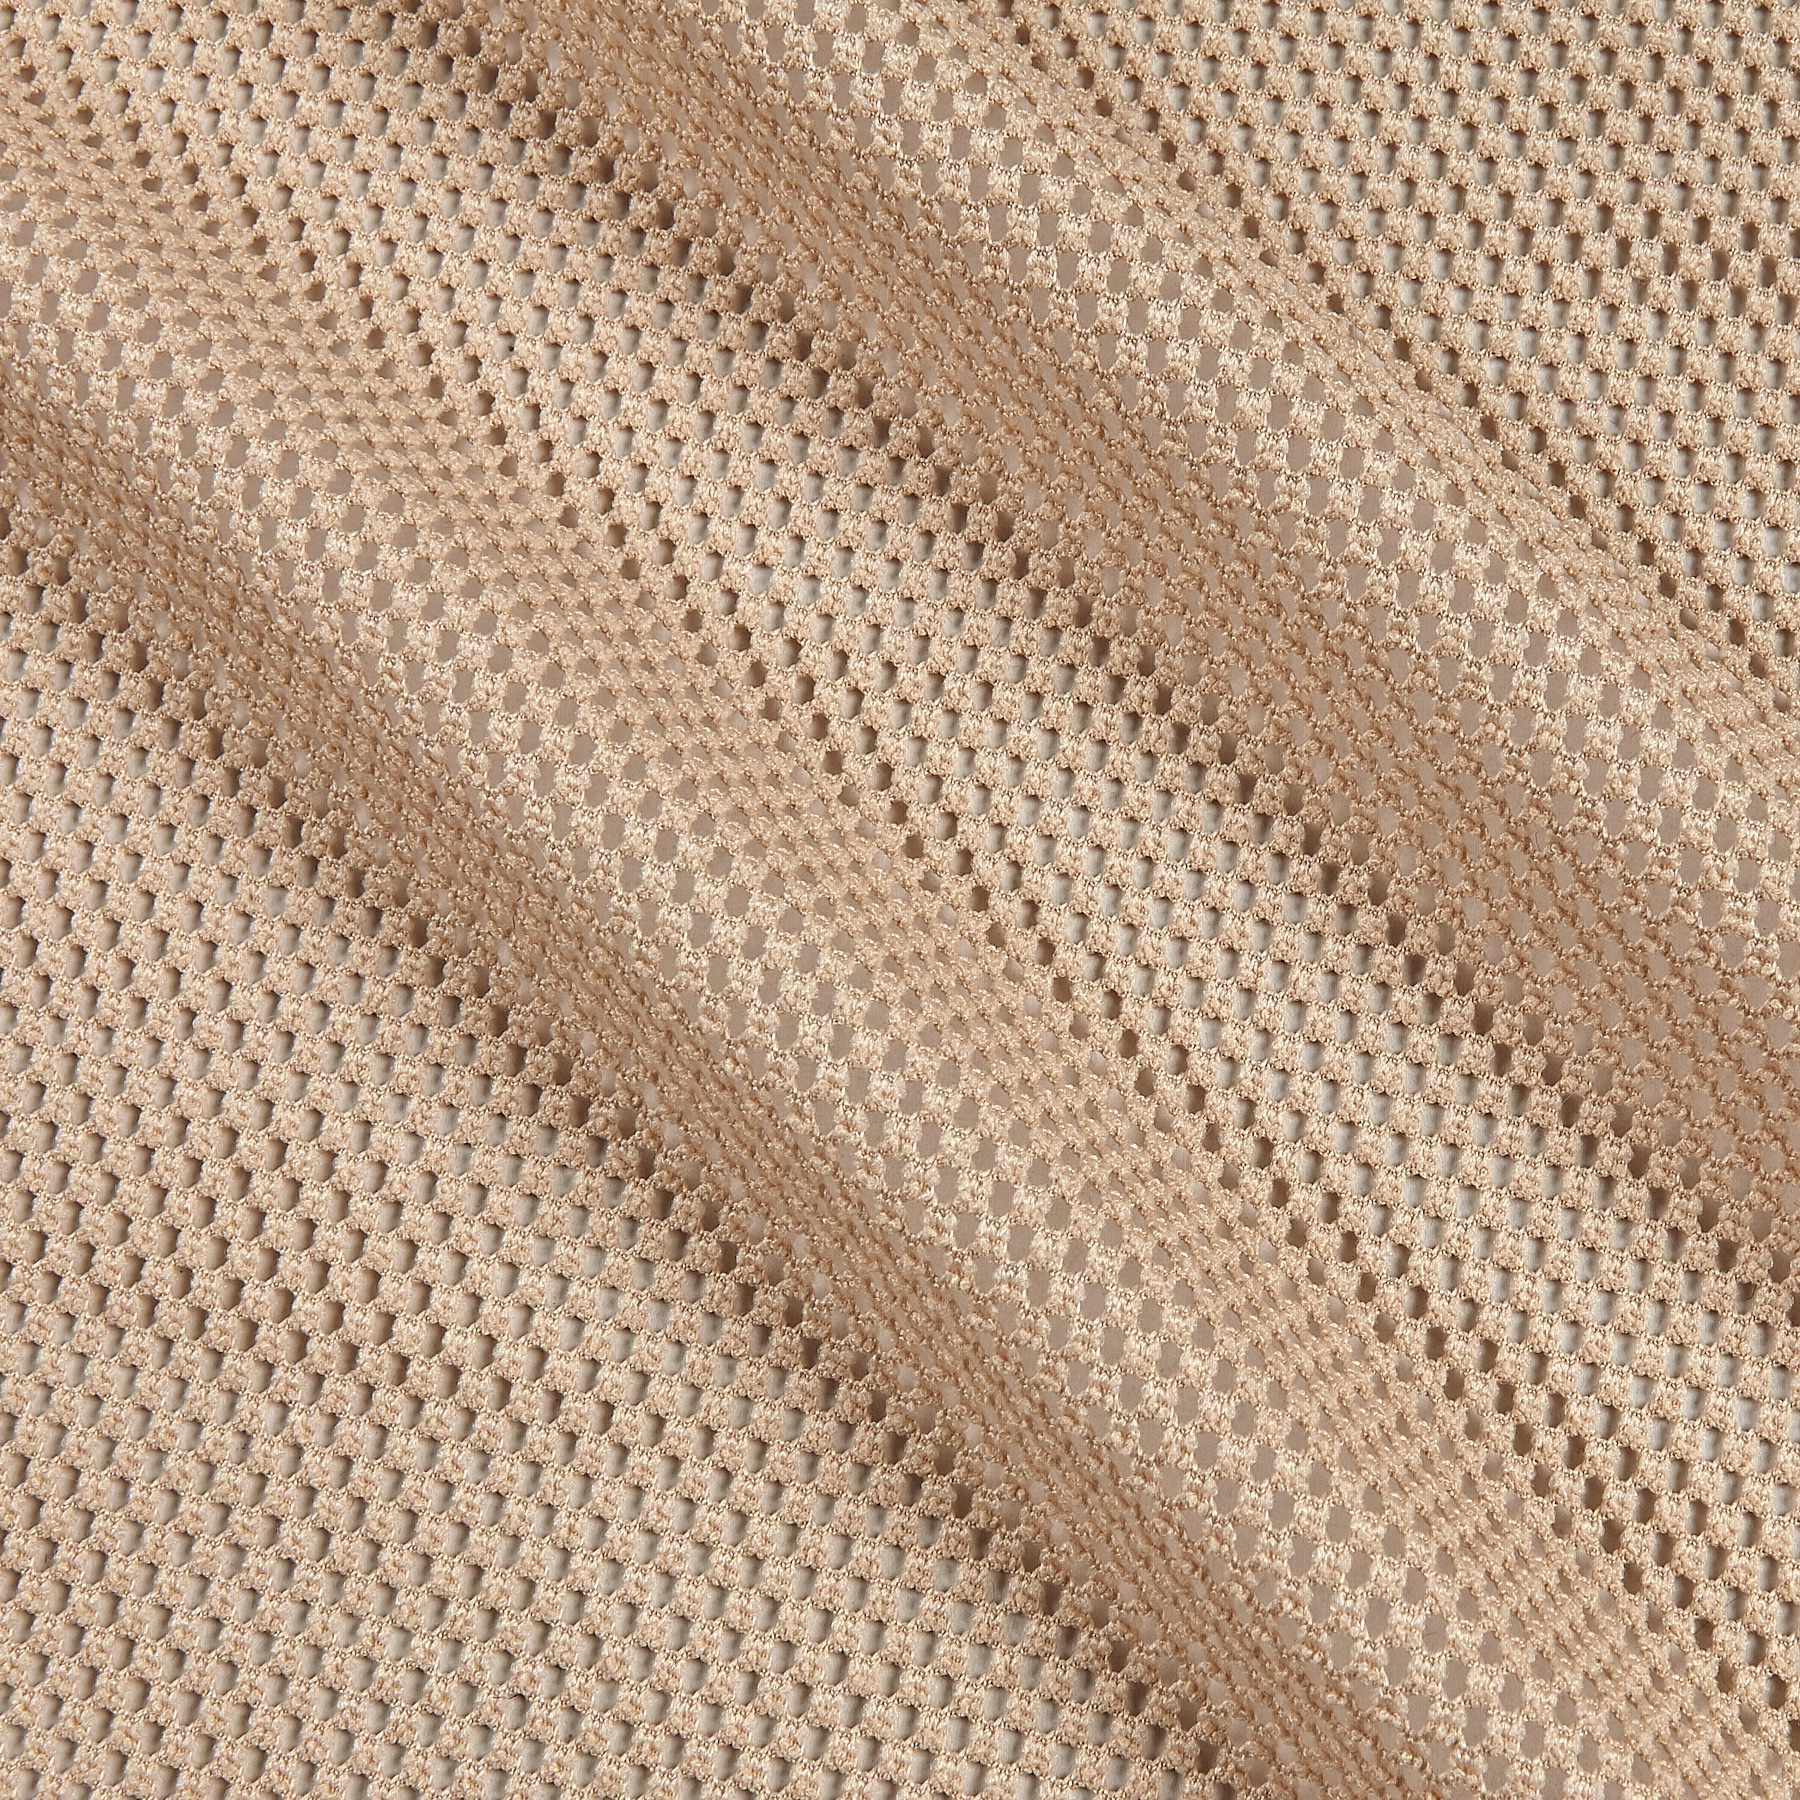 Telio Mod Stretch Mesh Tan Fabric 0395285